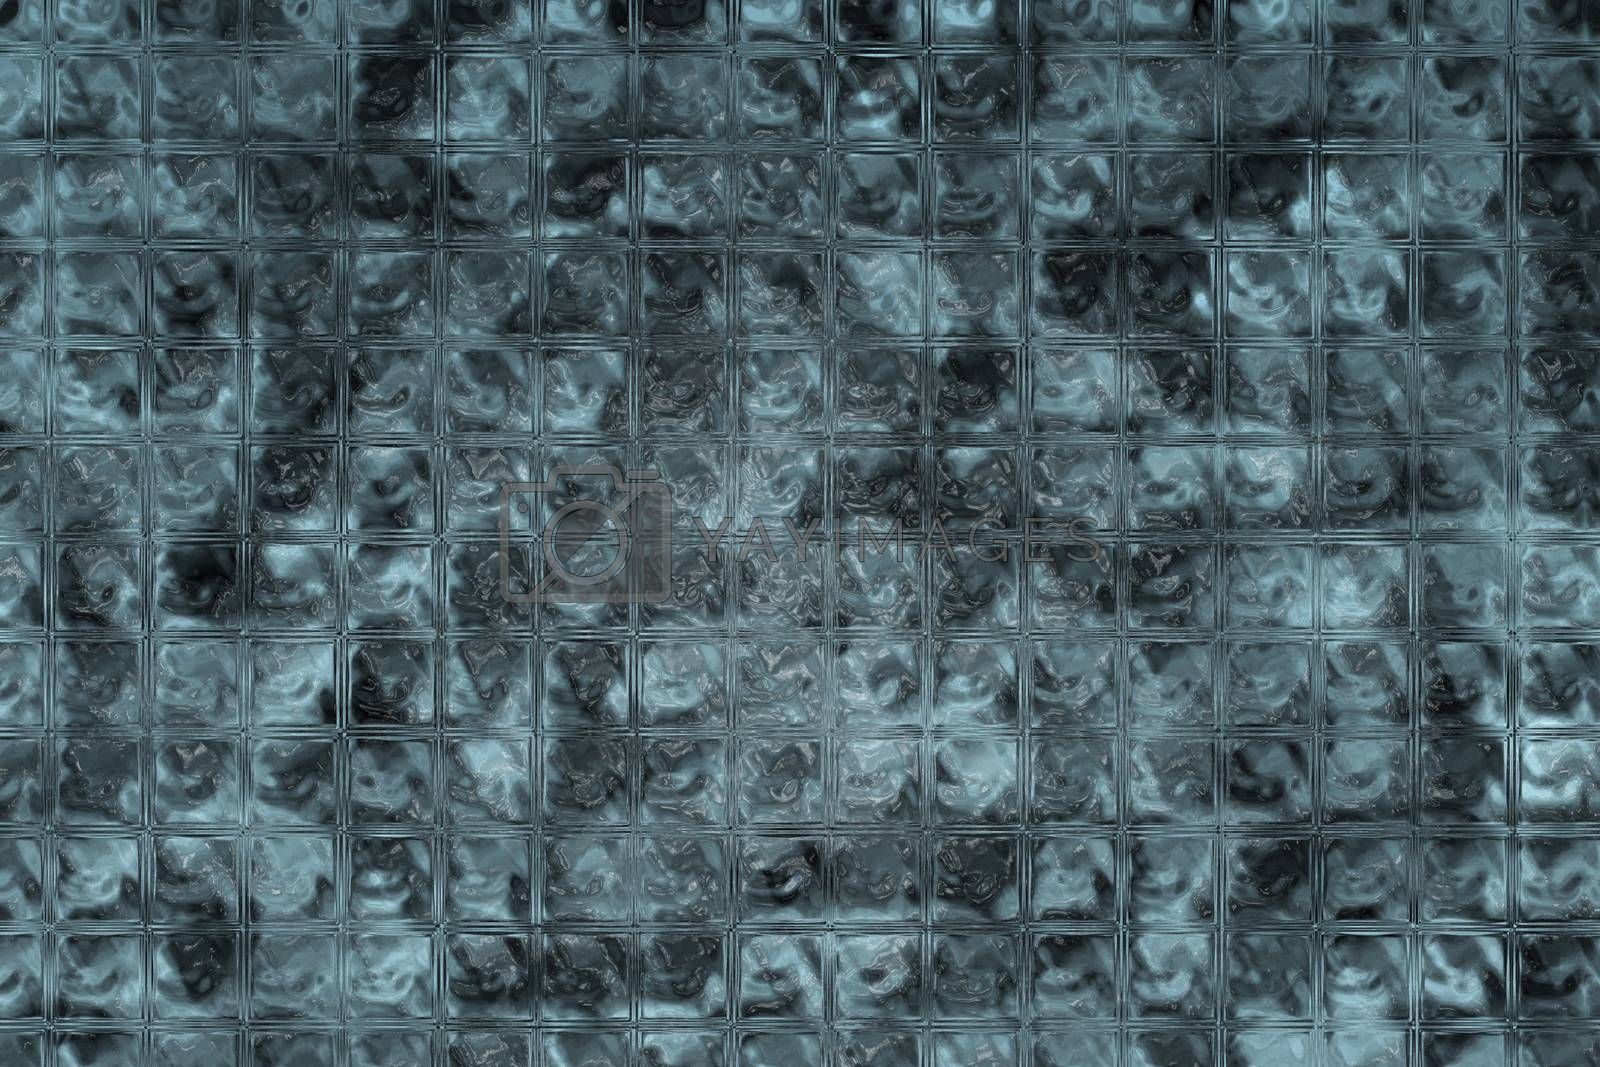 The background image with the image of the surface texture of the glass